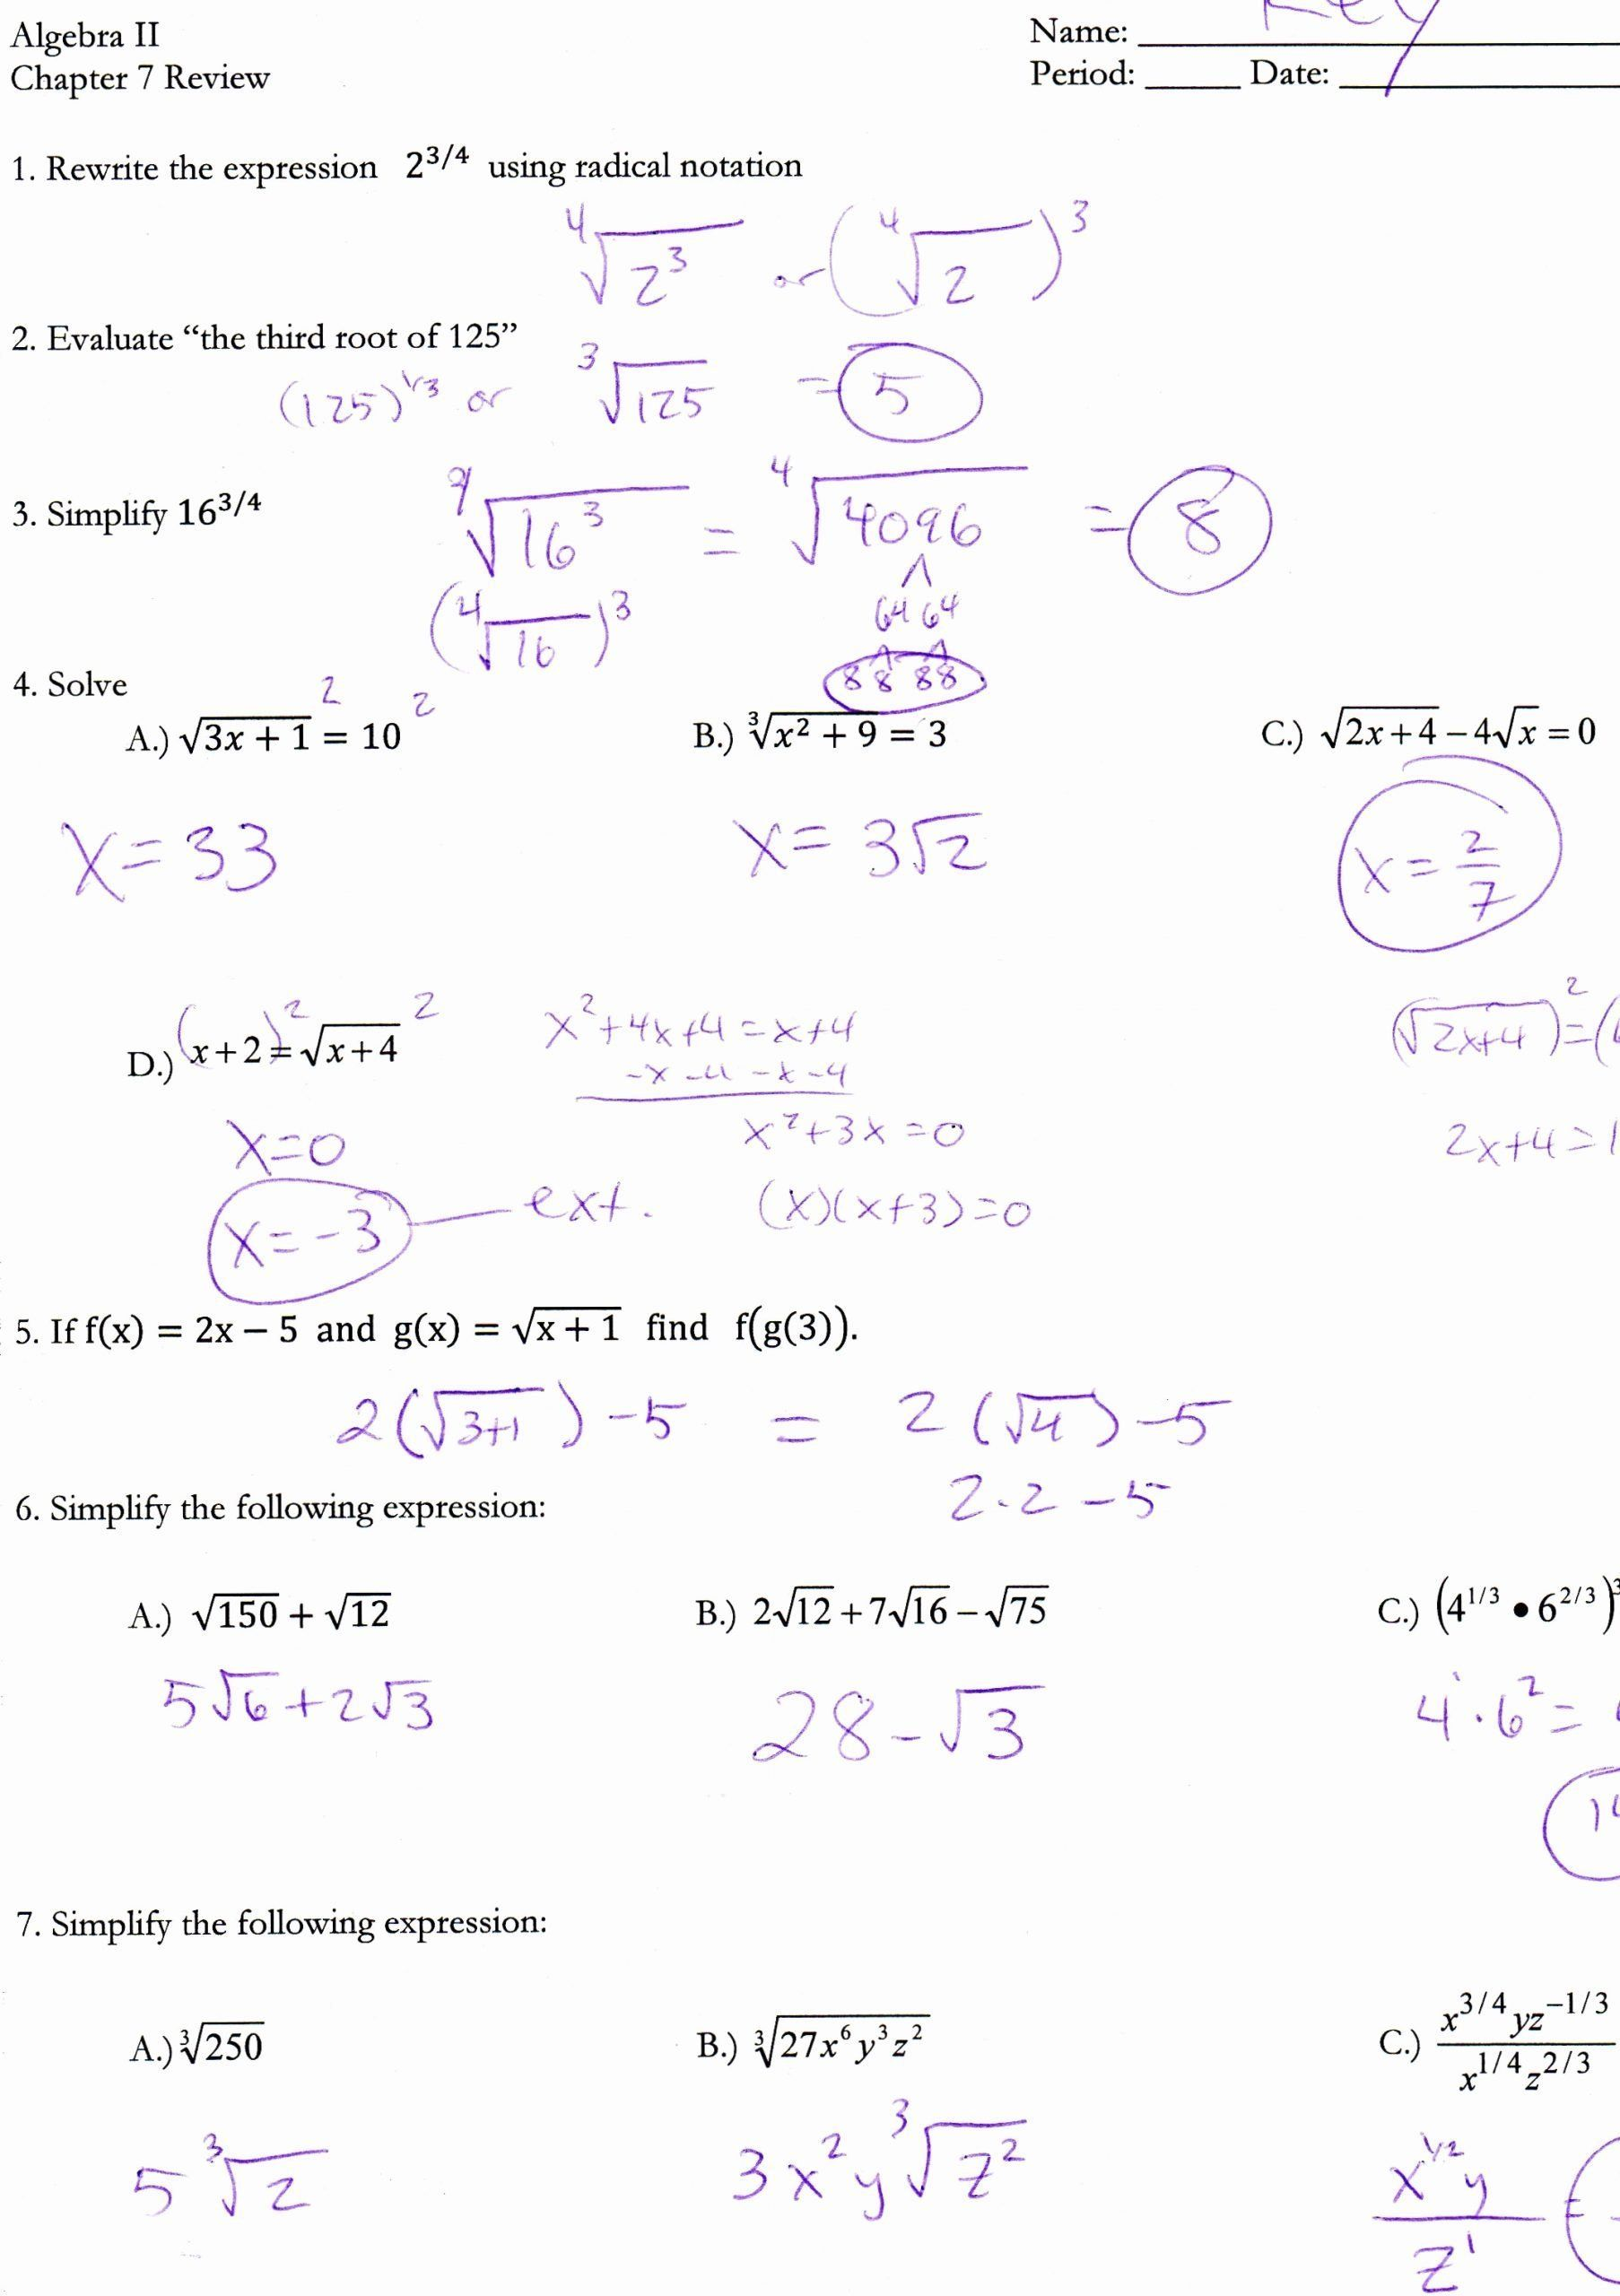 Algebra 2 Review Worksheet Luxury Algebra Ii Mr Shepherd S